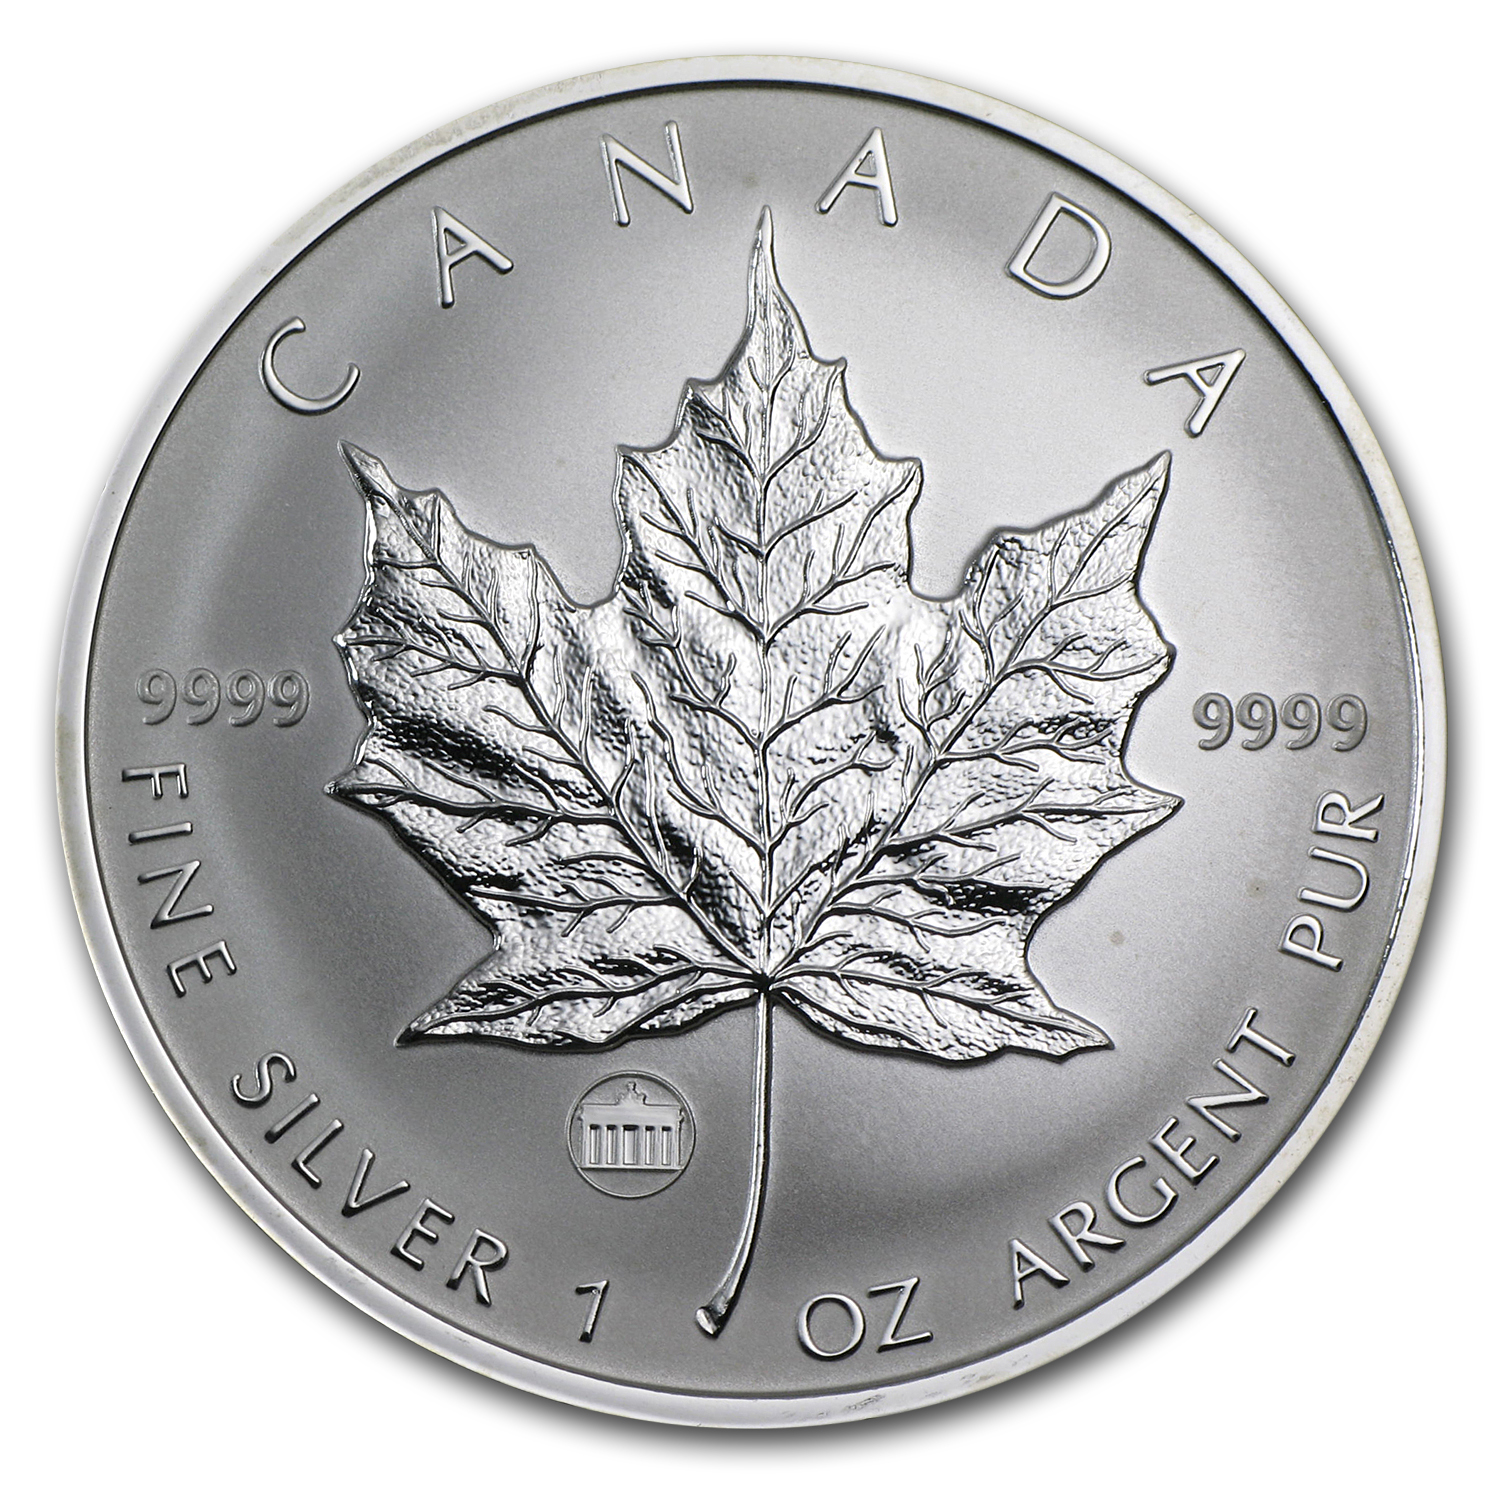 2009 1 oz Silver Canadian Maple Leaf - Brandenburg Gate Privy